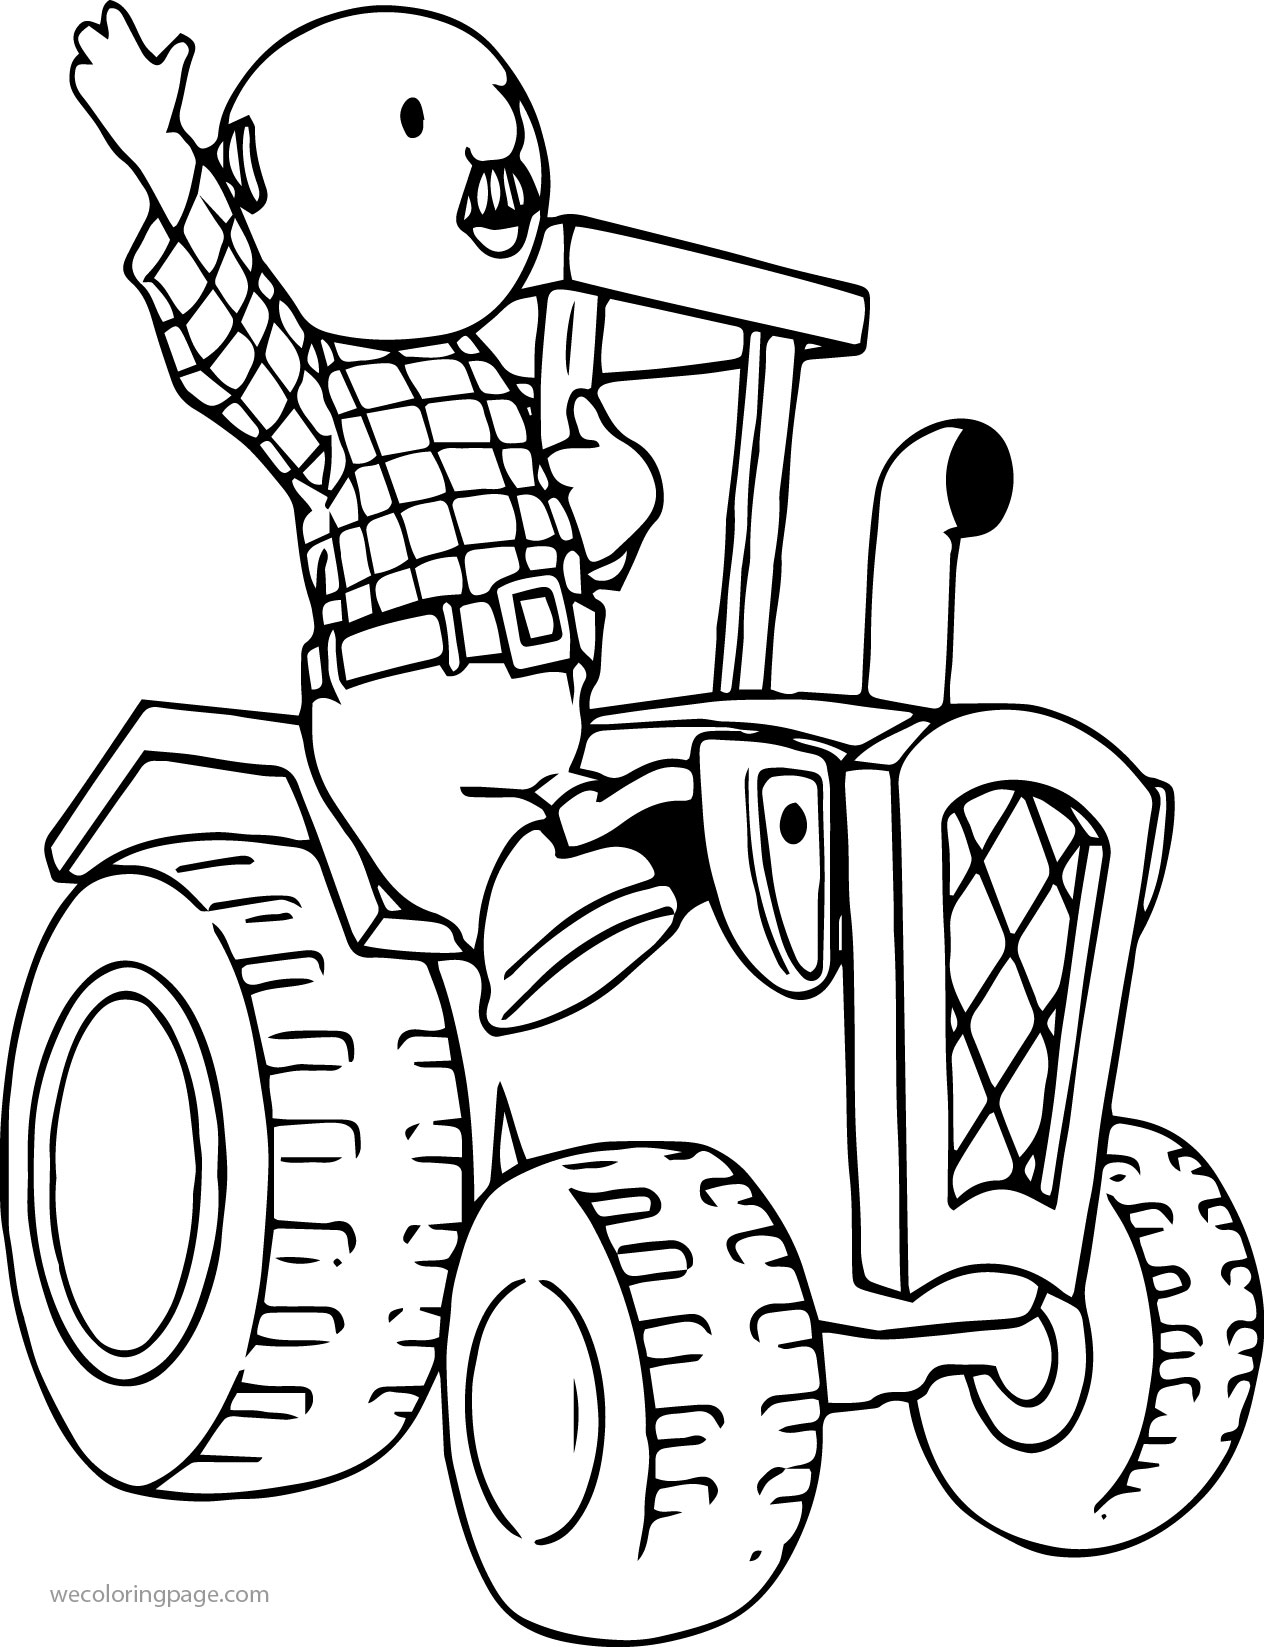 Percy Pickles Driving Tractor Coloring Page | Wecoloringpage.com